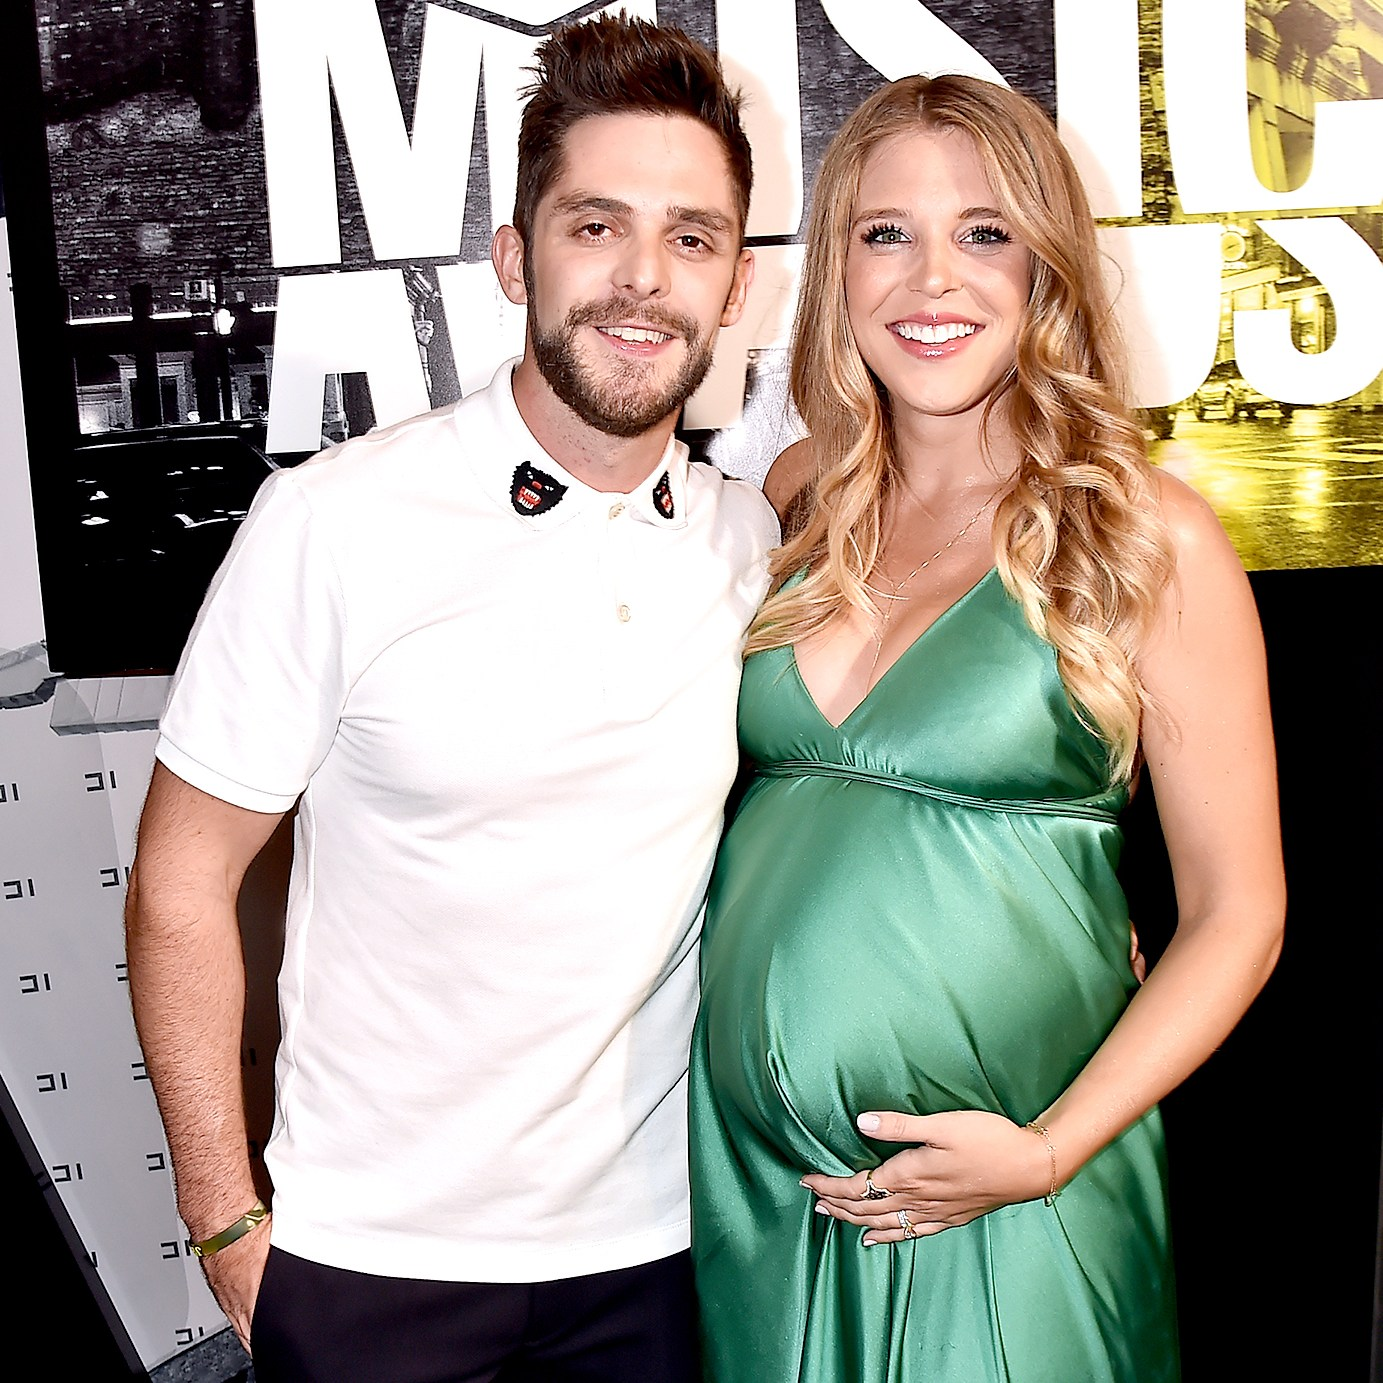 Thomas Rhett and Lauren Gregory (R) attend the 2017 CMT Music Awards at the Music City Center on June 7, 2017 in Nashville, Tennessee.